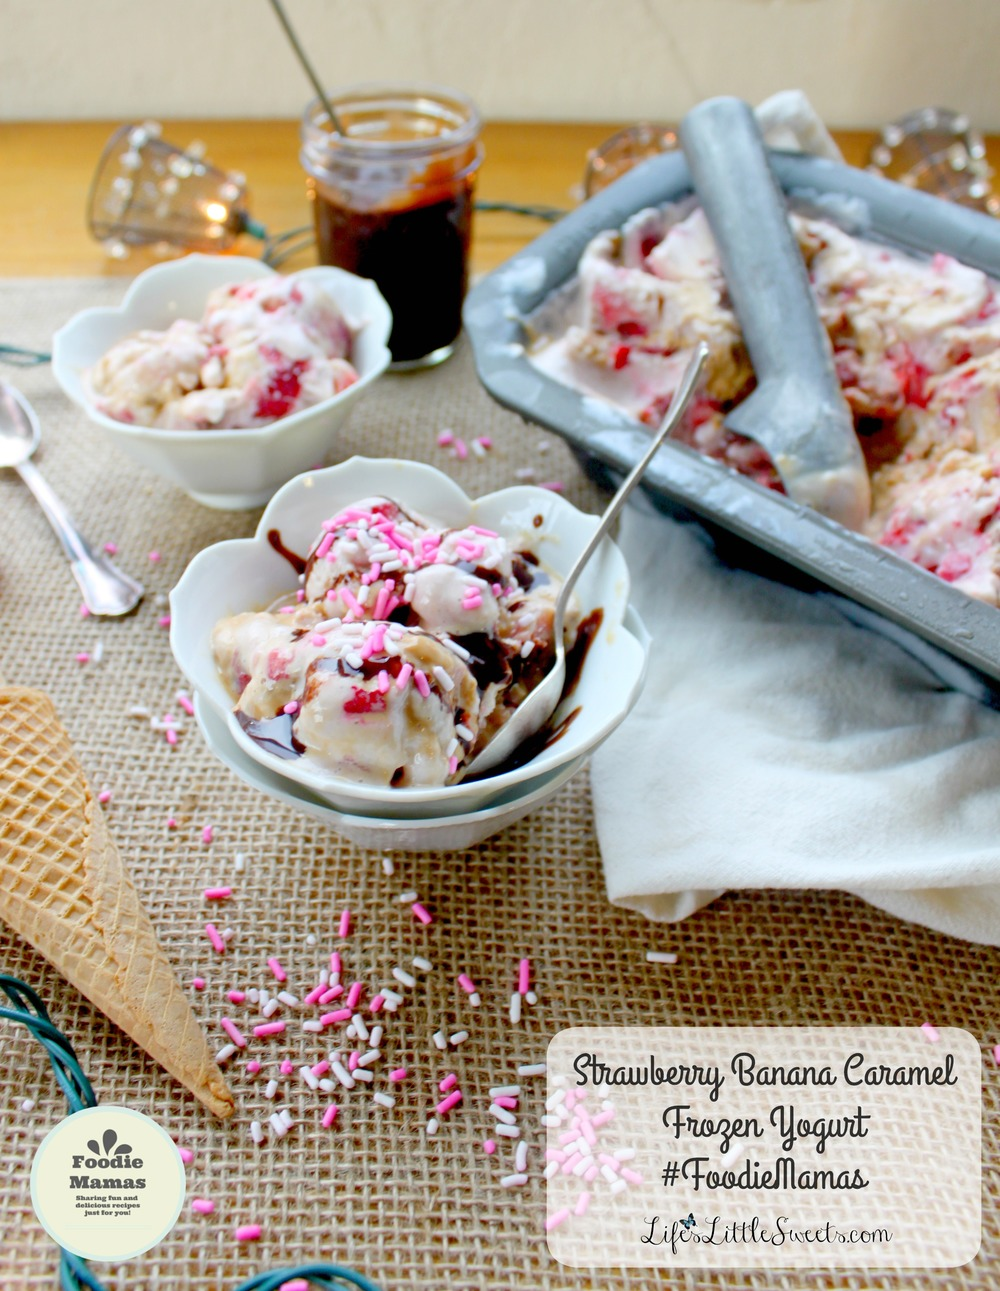 Strawberry Banana Caramel Frozen Yogurt